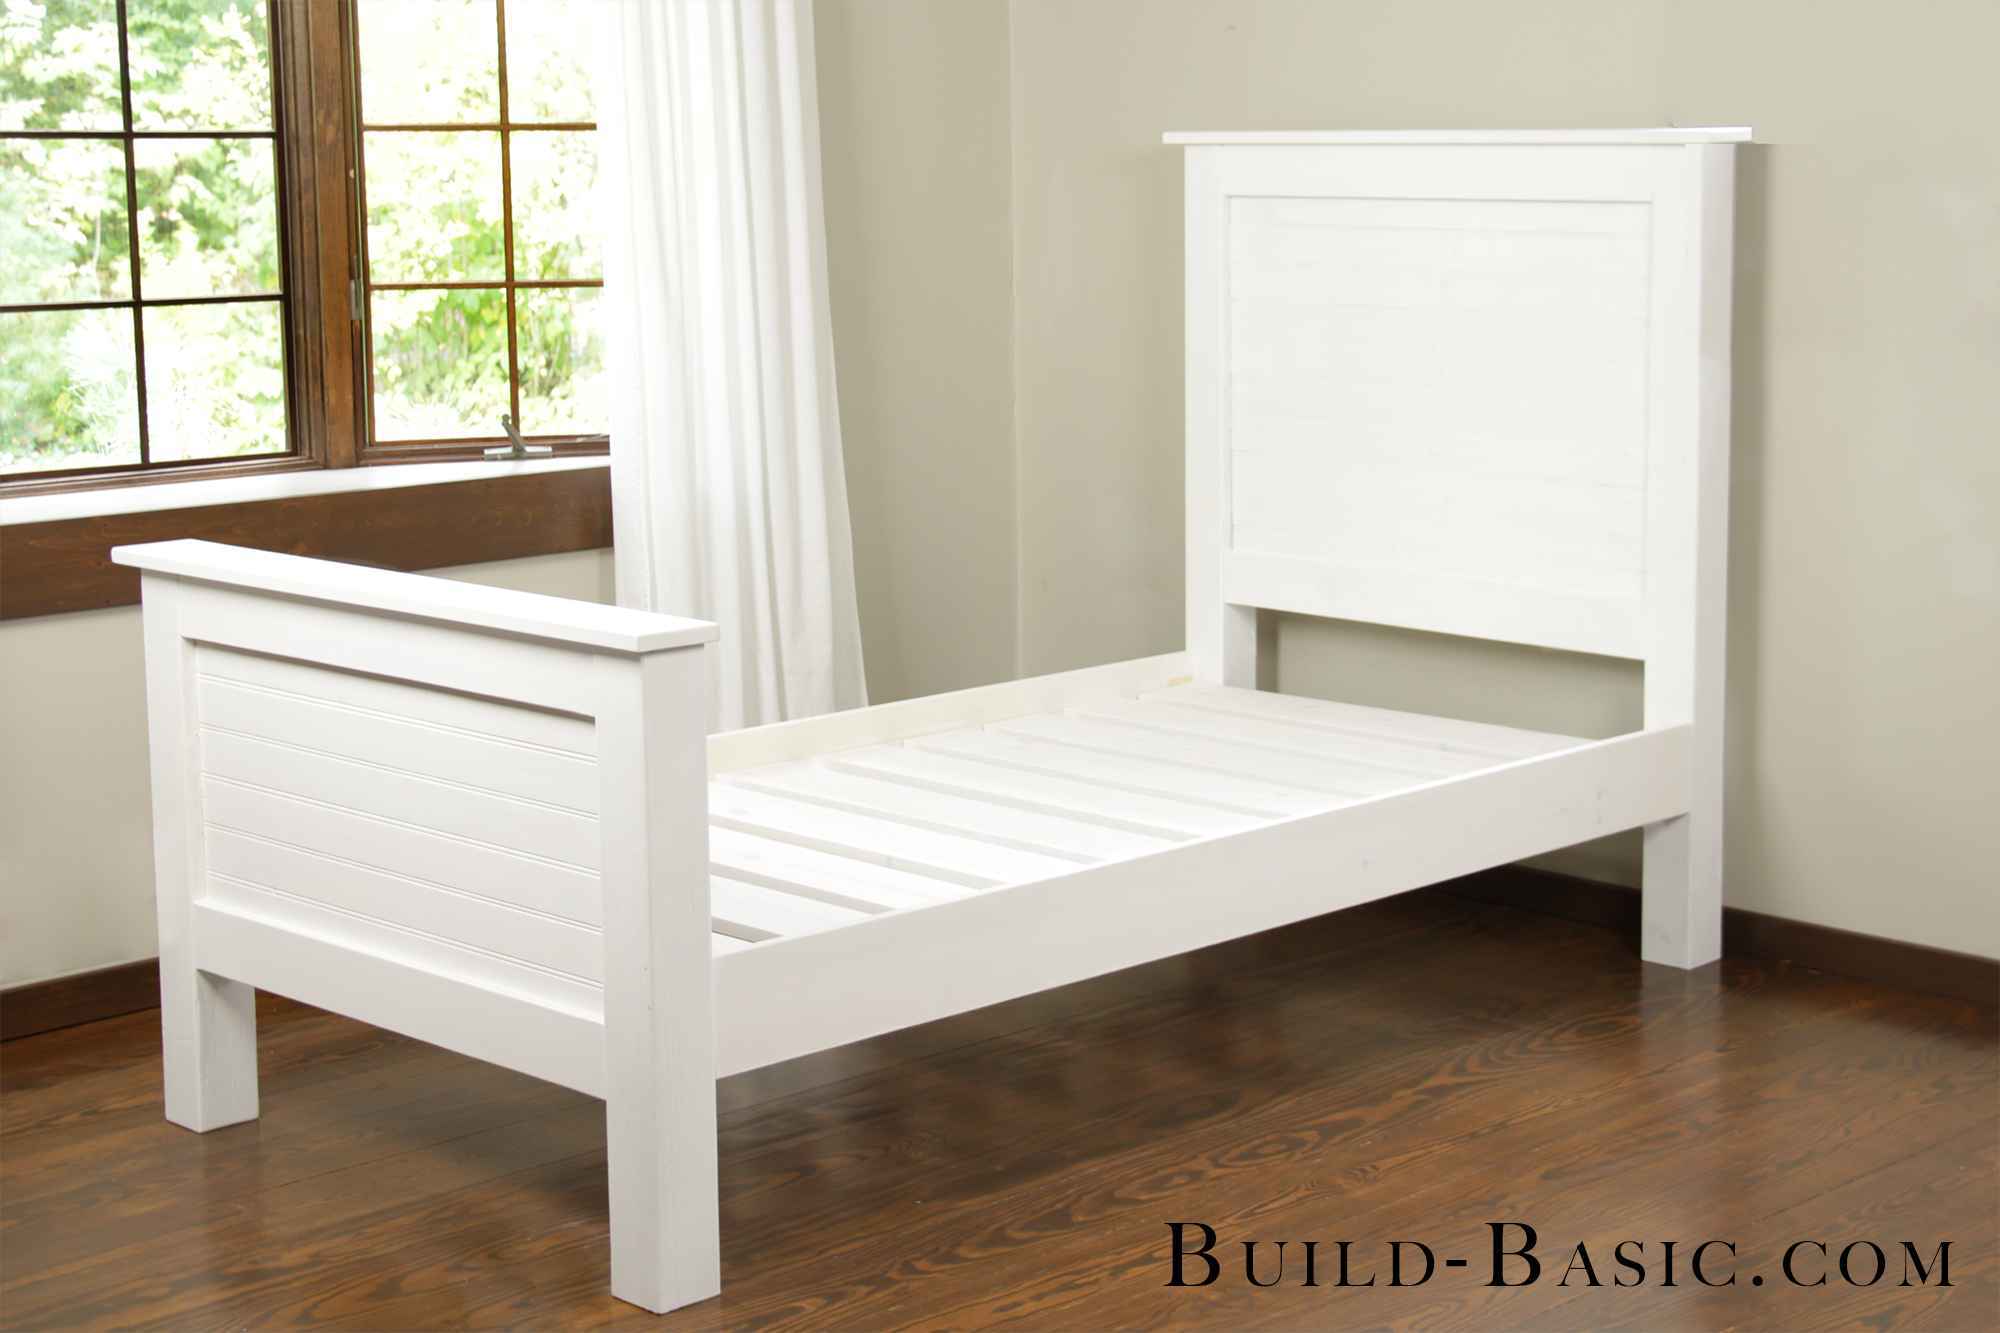 ideas with bedroom bed ways ultimate storage a the create surround to design pin